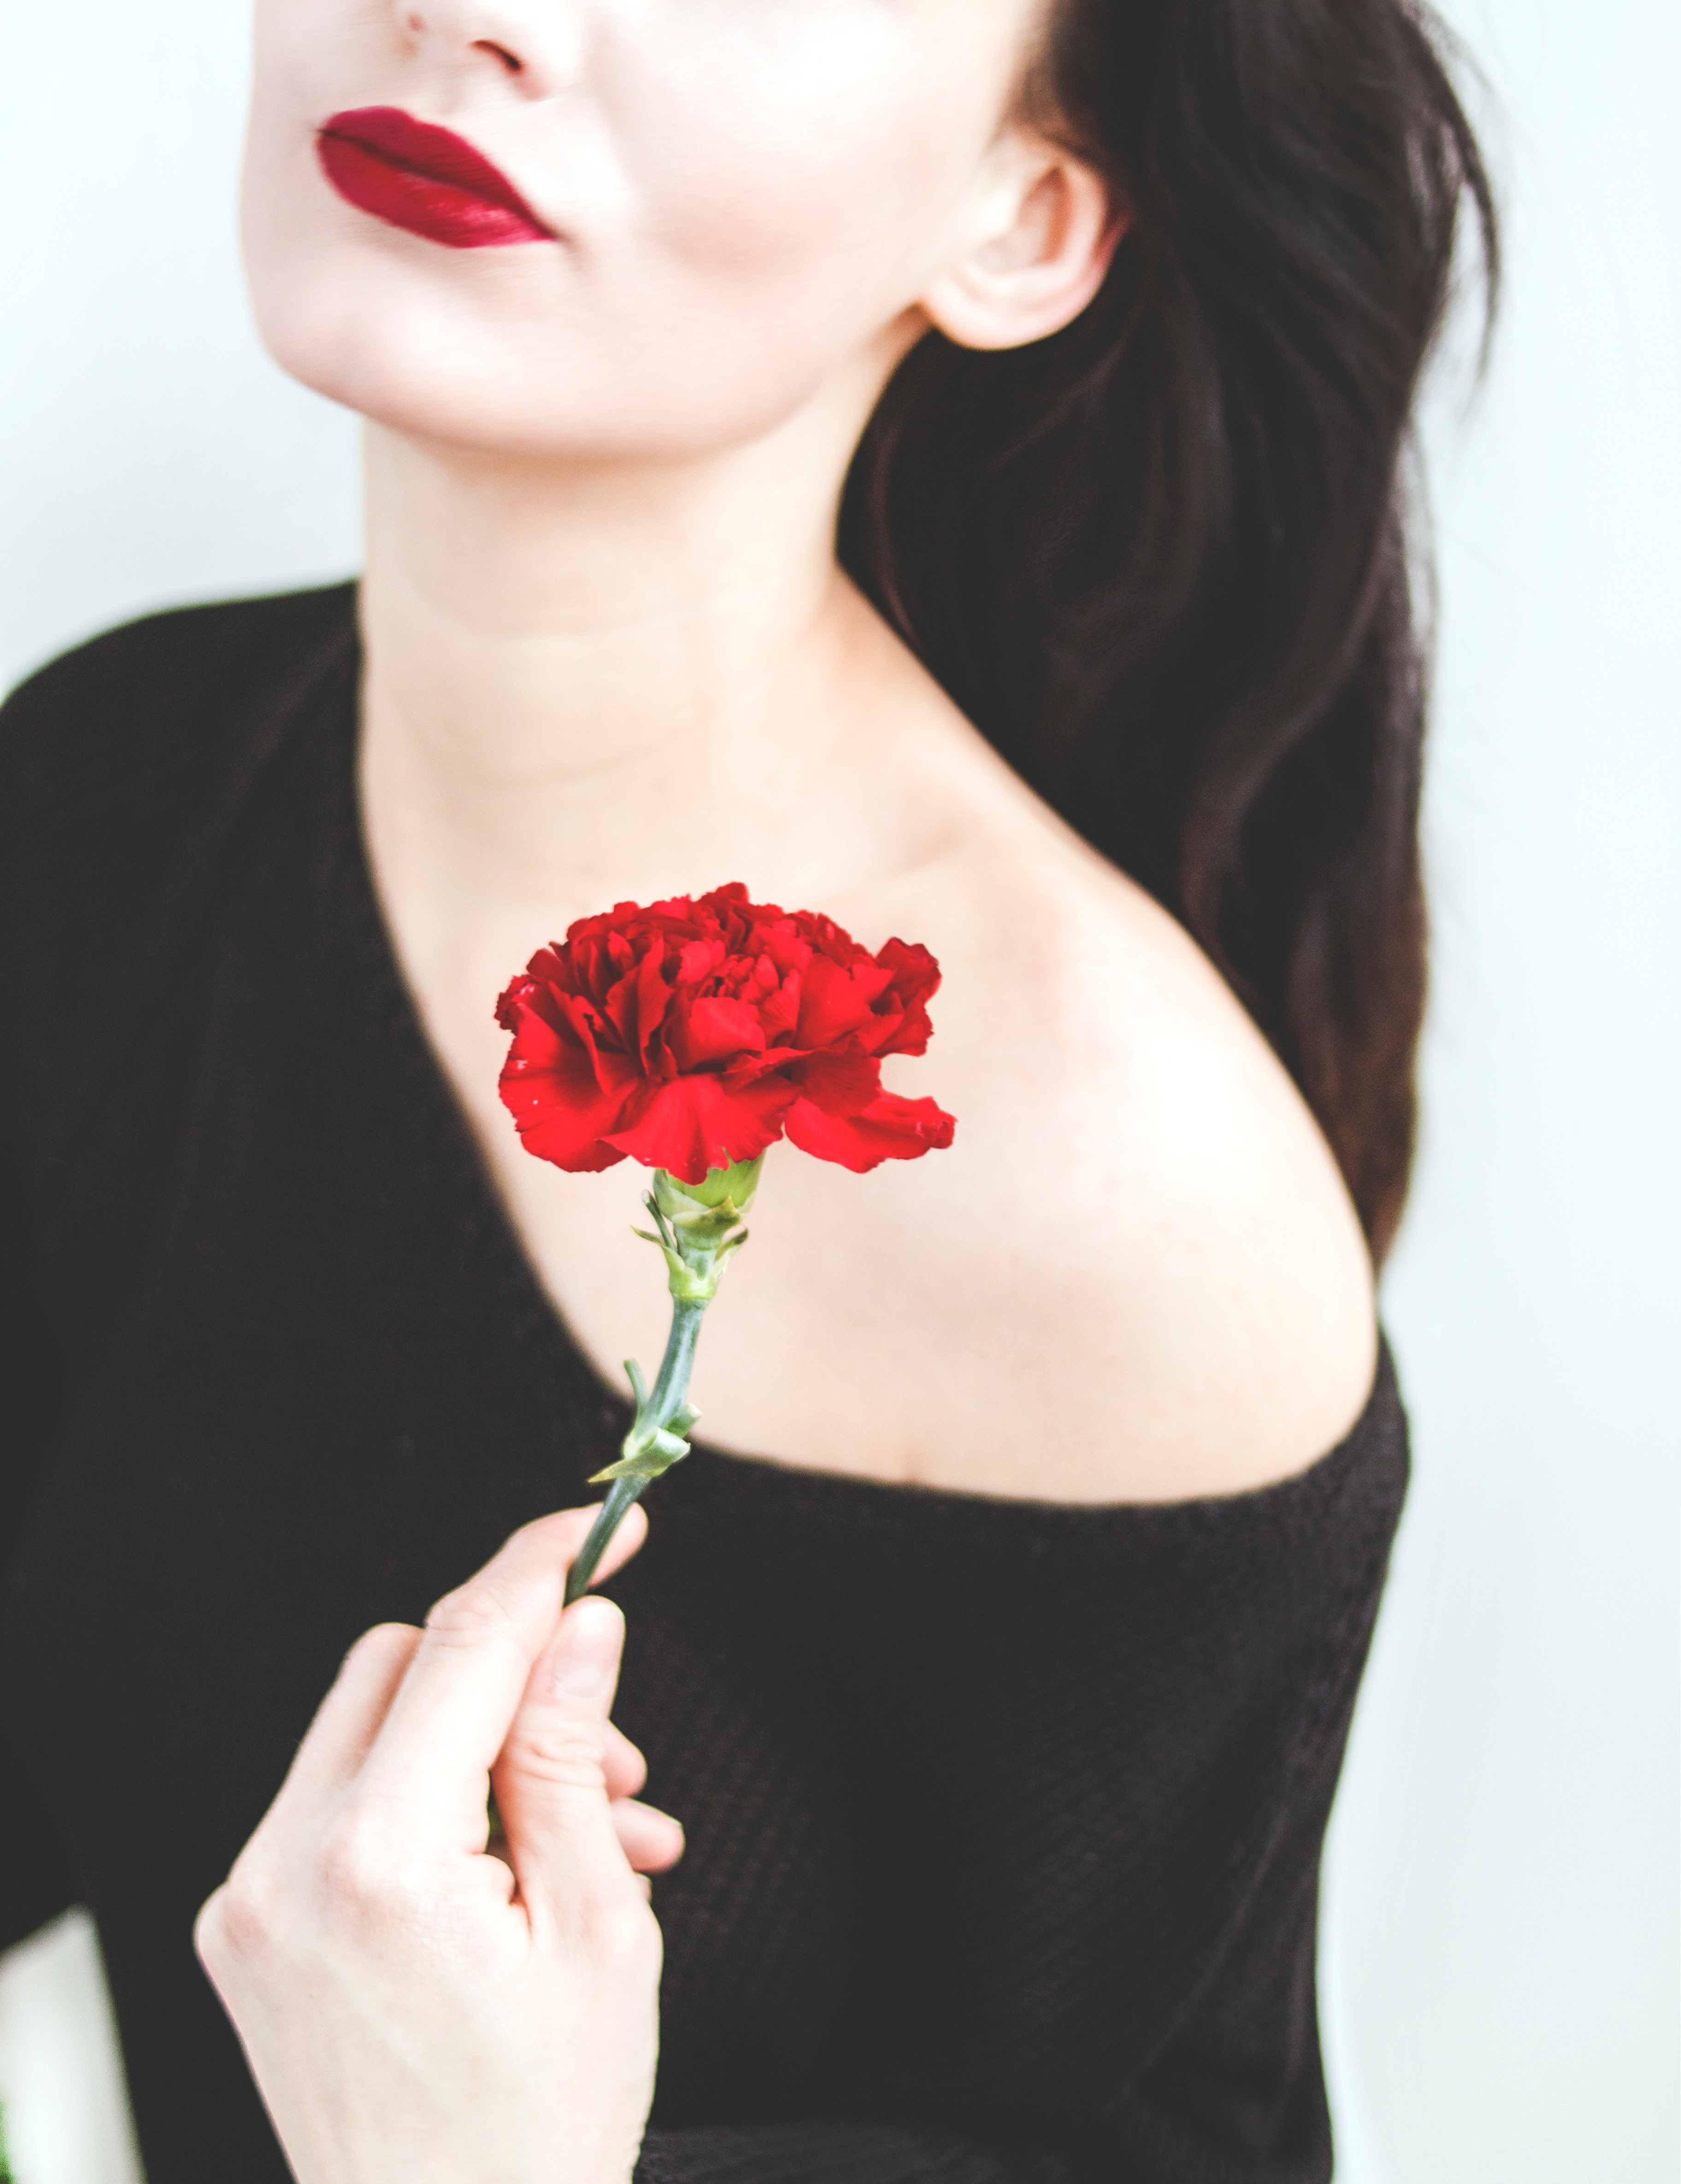 Woman in Black One-shoulder Top Holding Red Carnation, Adult, Person, Woman, White background, HQ Photo